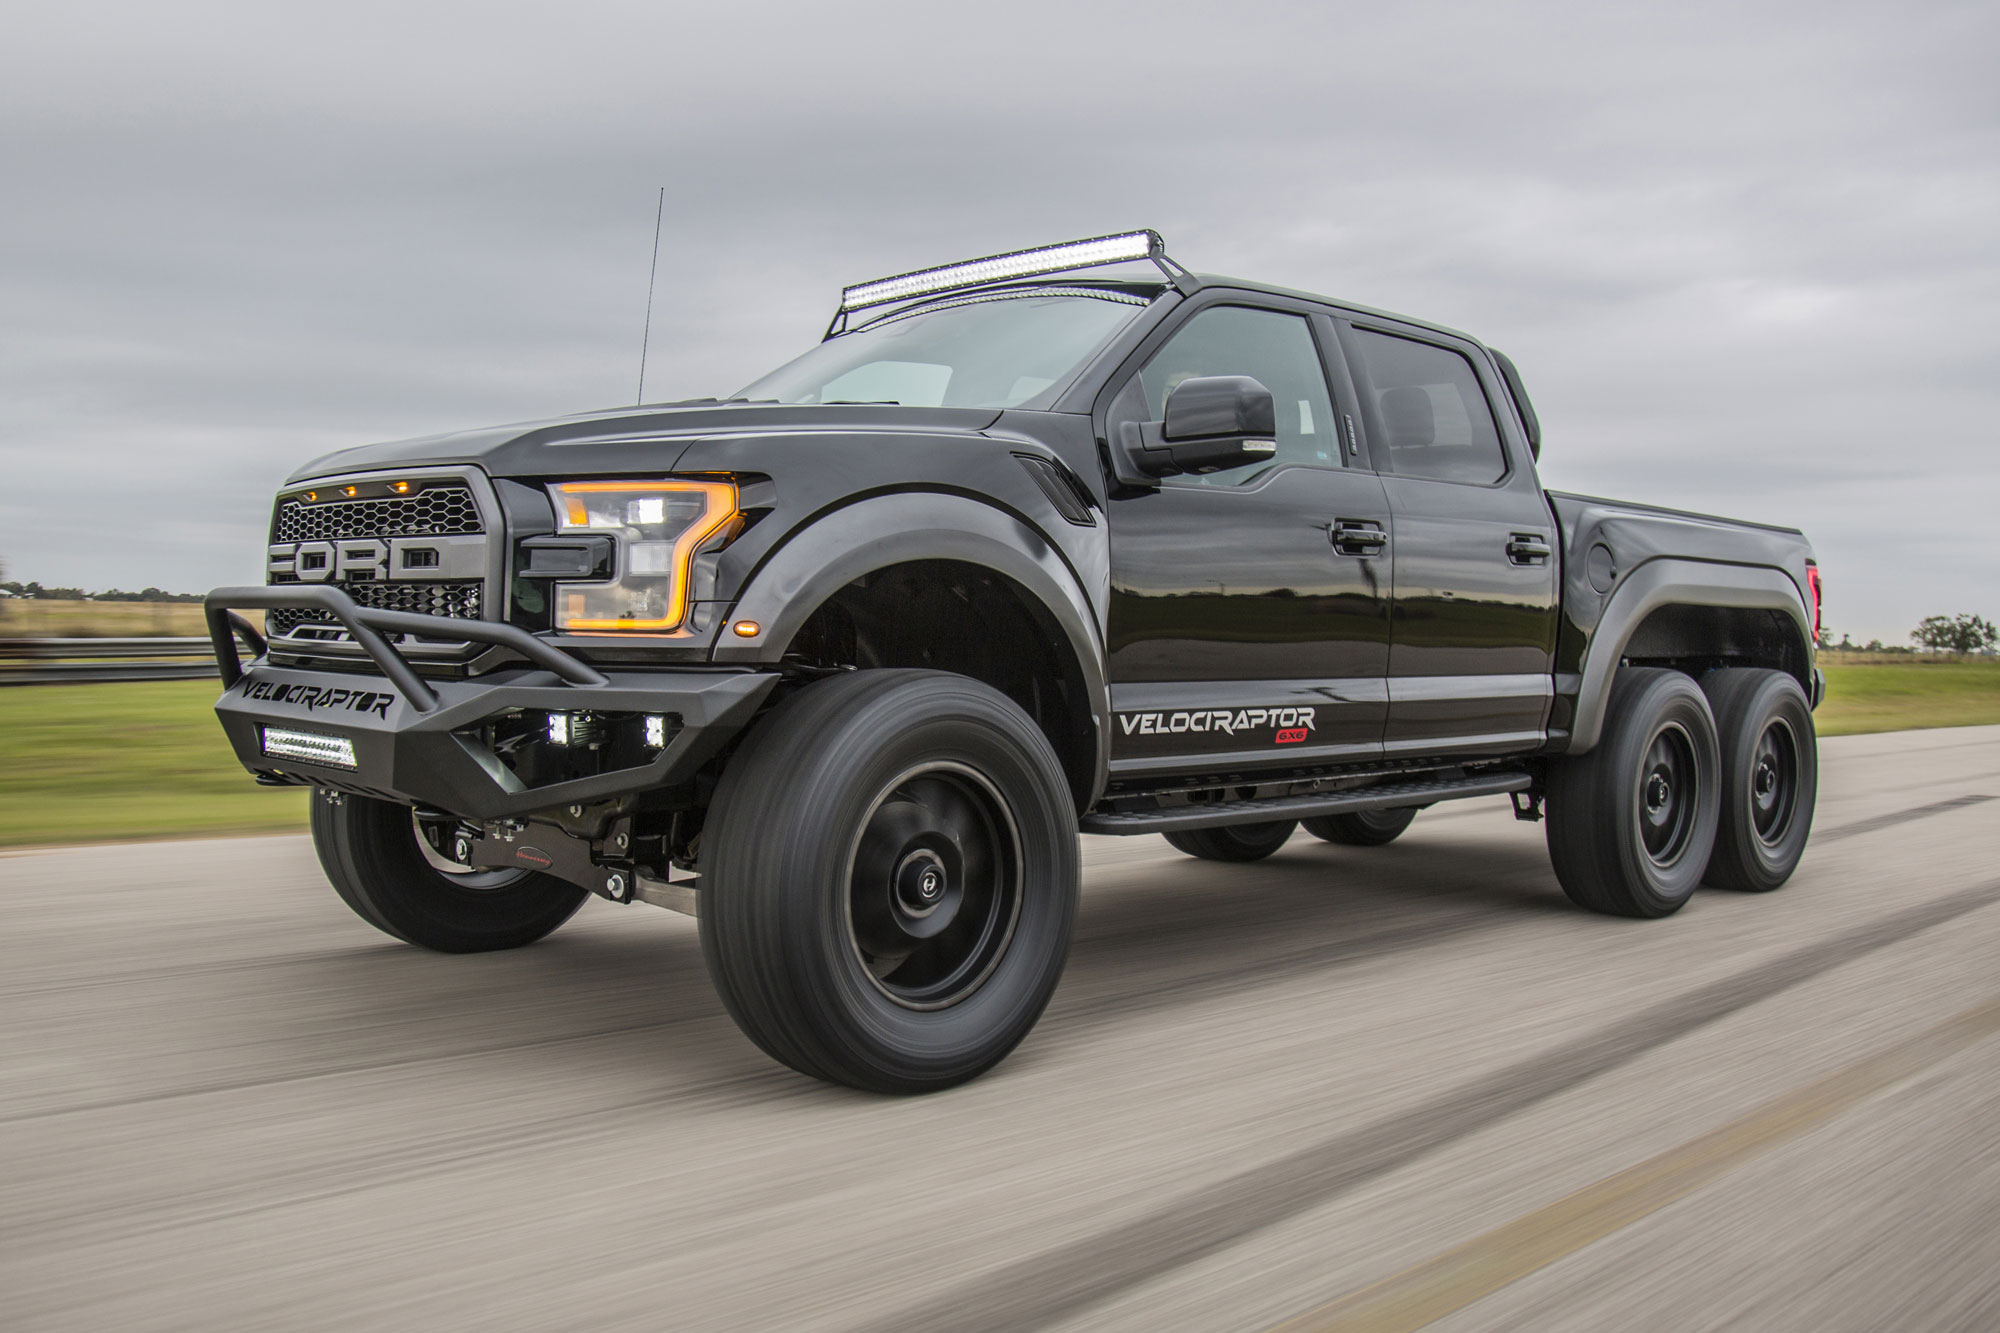 6x6 Ford Truck Is 'Aggression on Wheels'